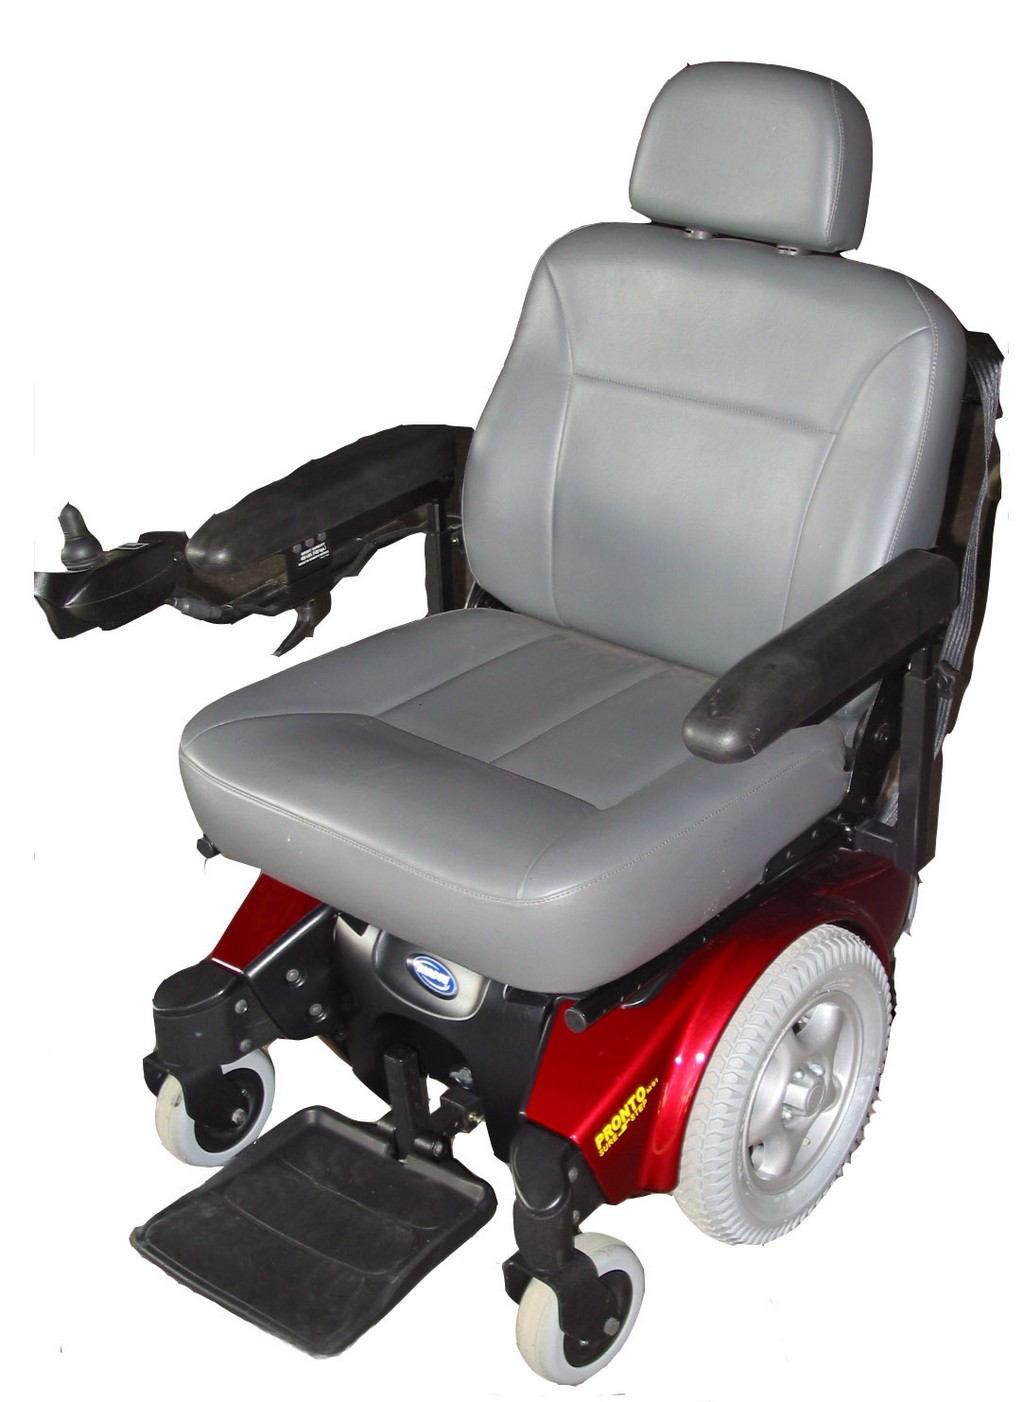 pride jet 3 power wheel chair, power wheel chair seat lift, power wheel chairs tires, dalton rear wheel power chair